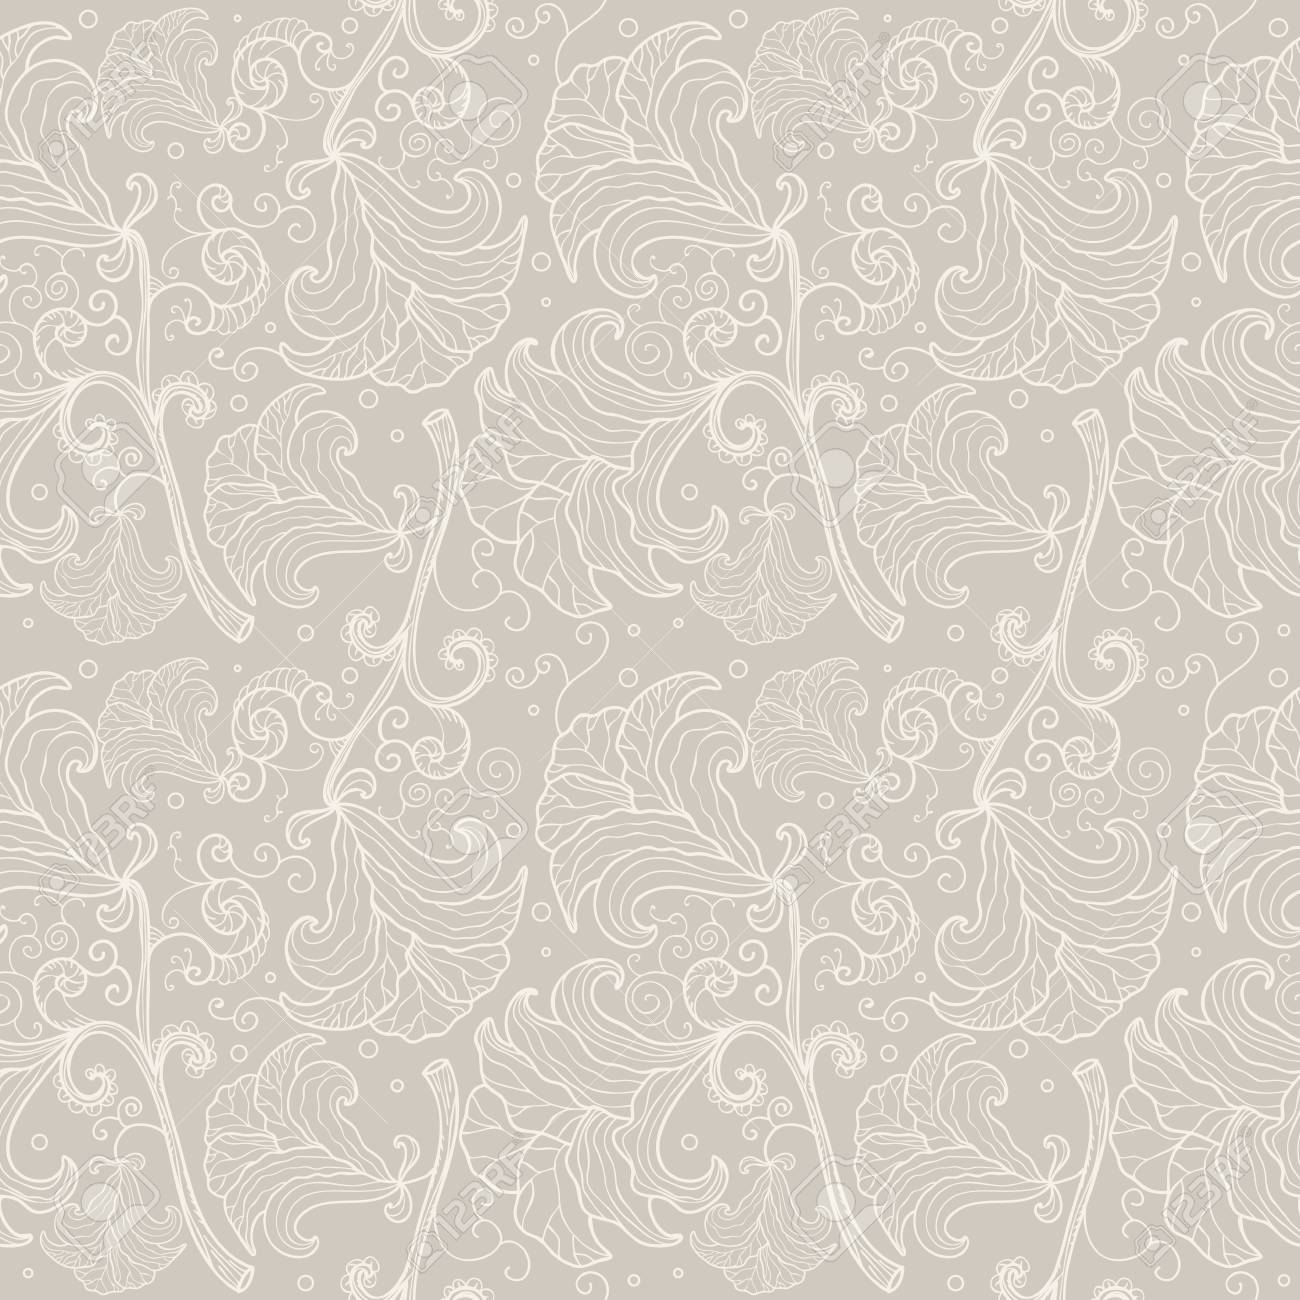 Abstract Seamless Floral Pattern Contour Elegant Wedding Background